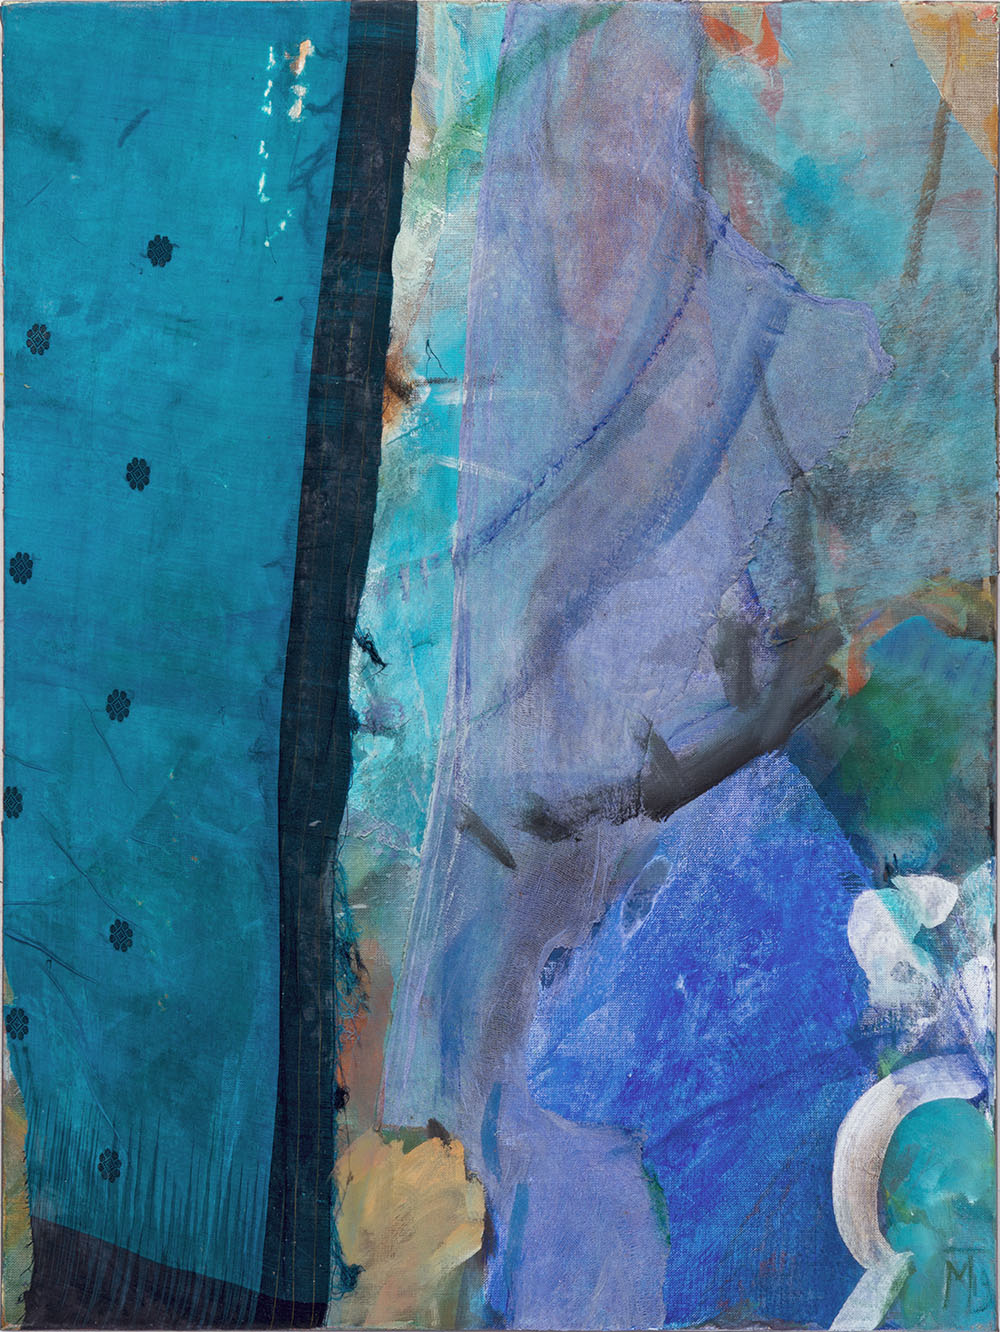 Indian blue, 80x60cm, mixed medium on canvas, 2019